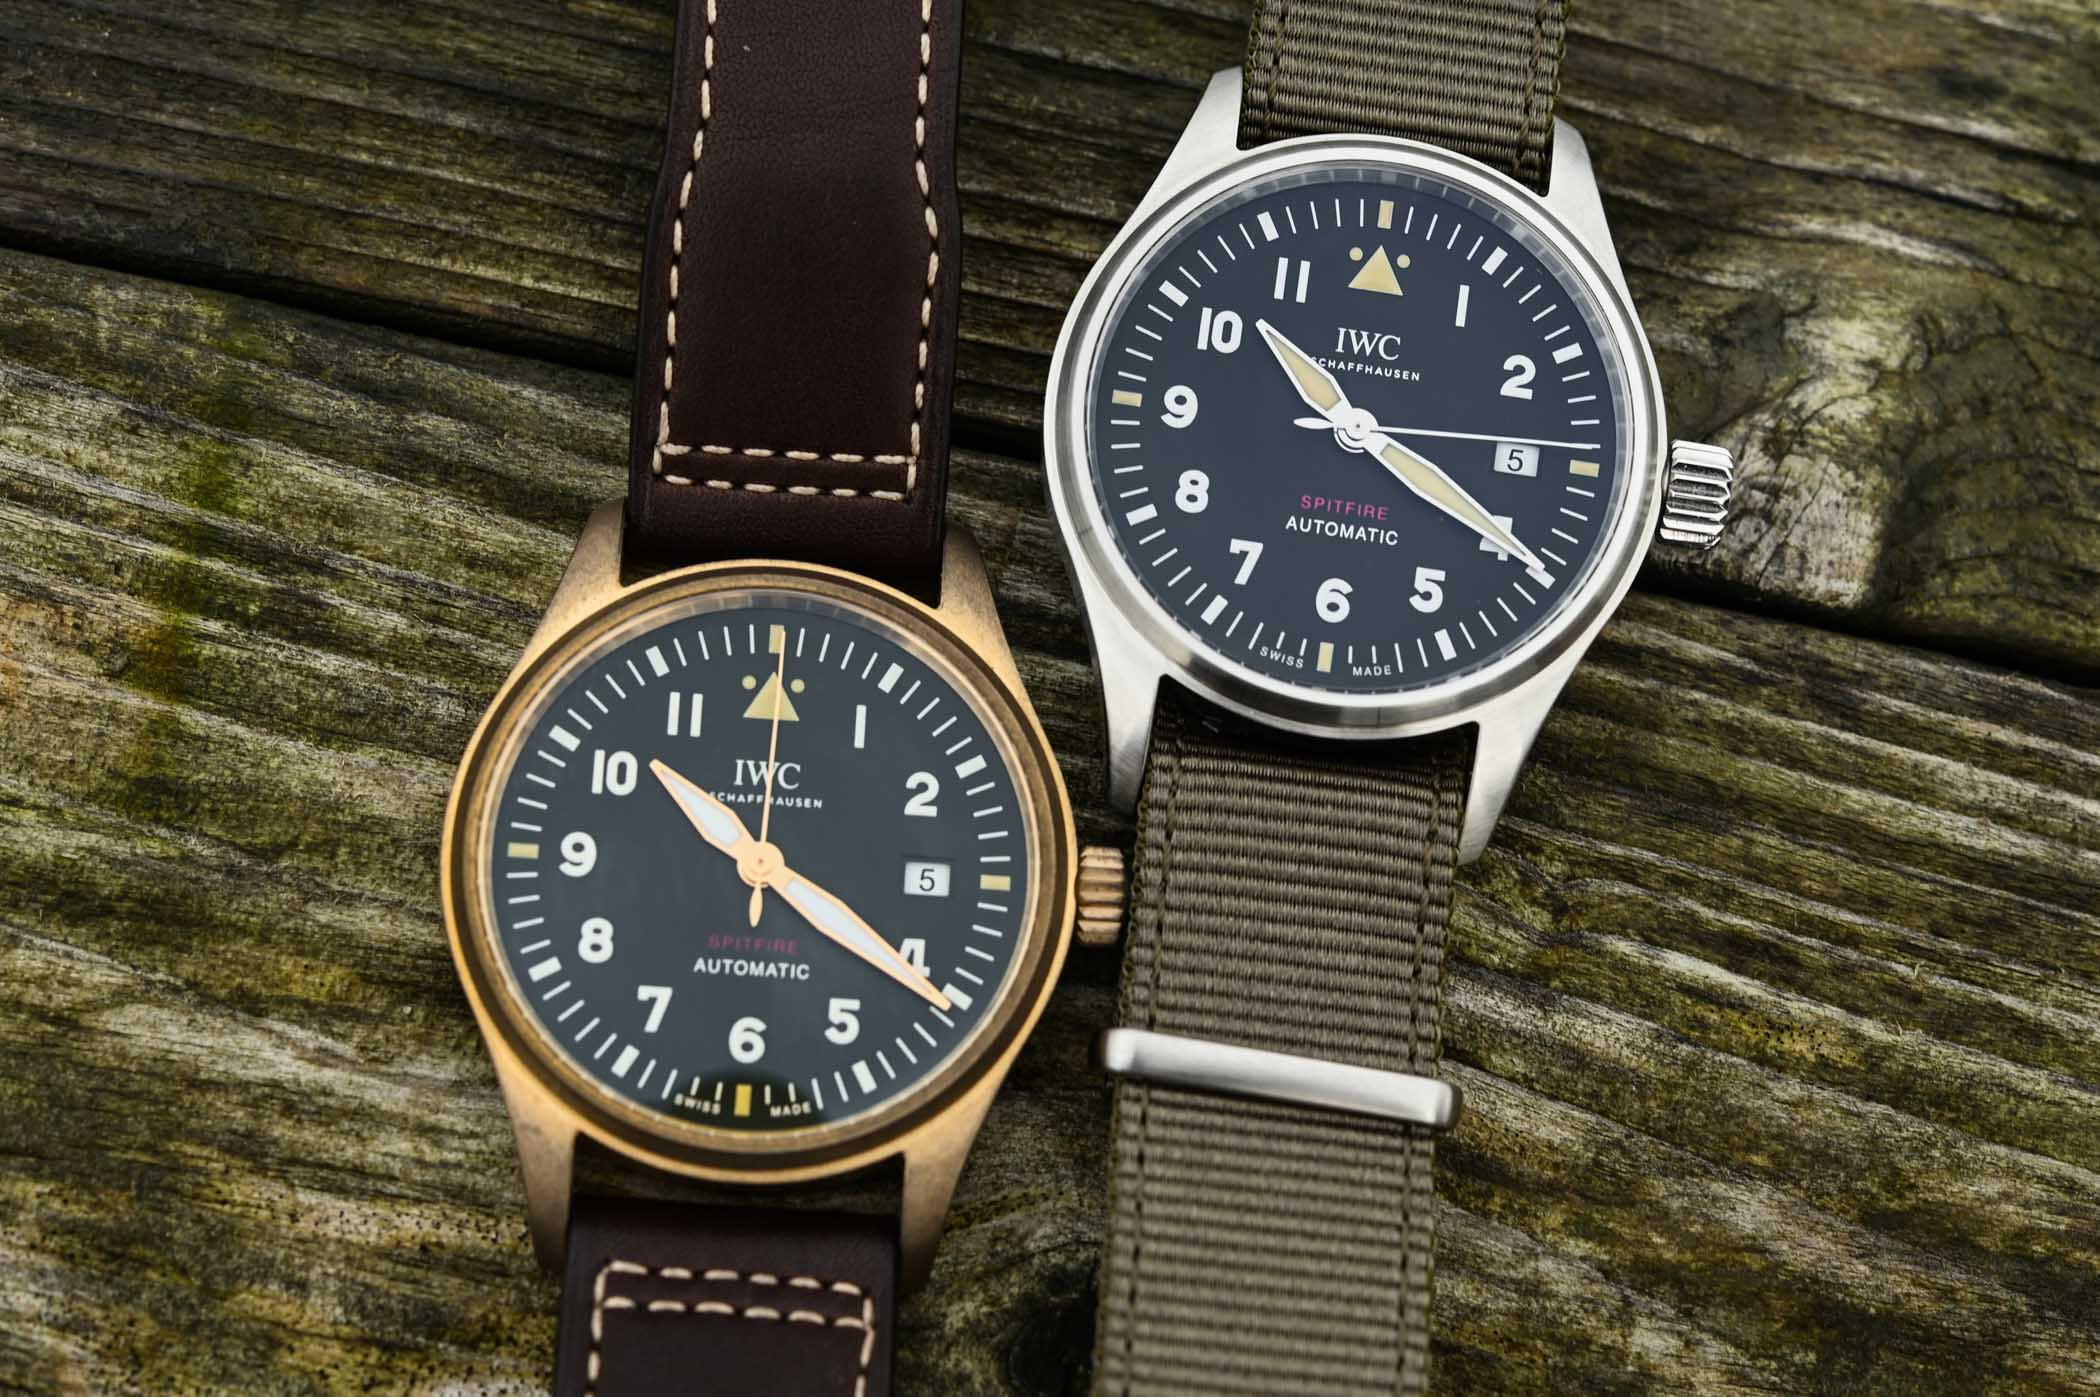 e8ad2ea14fc The new IWC Pilot s Watch Automatic Spitfire will be available in steel  (ref. IW326801